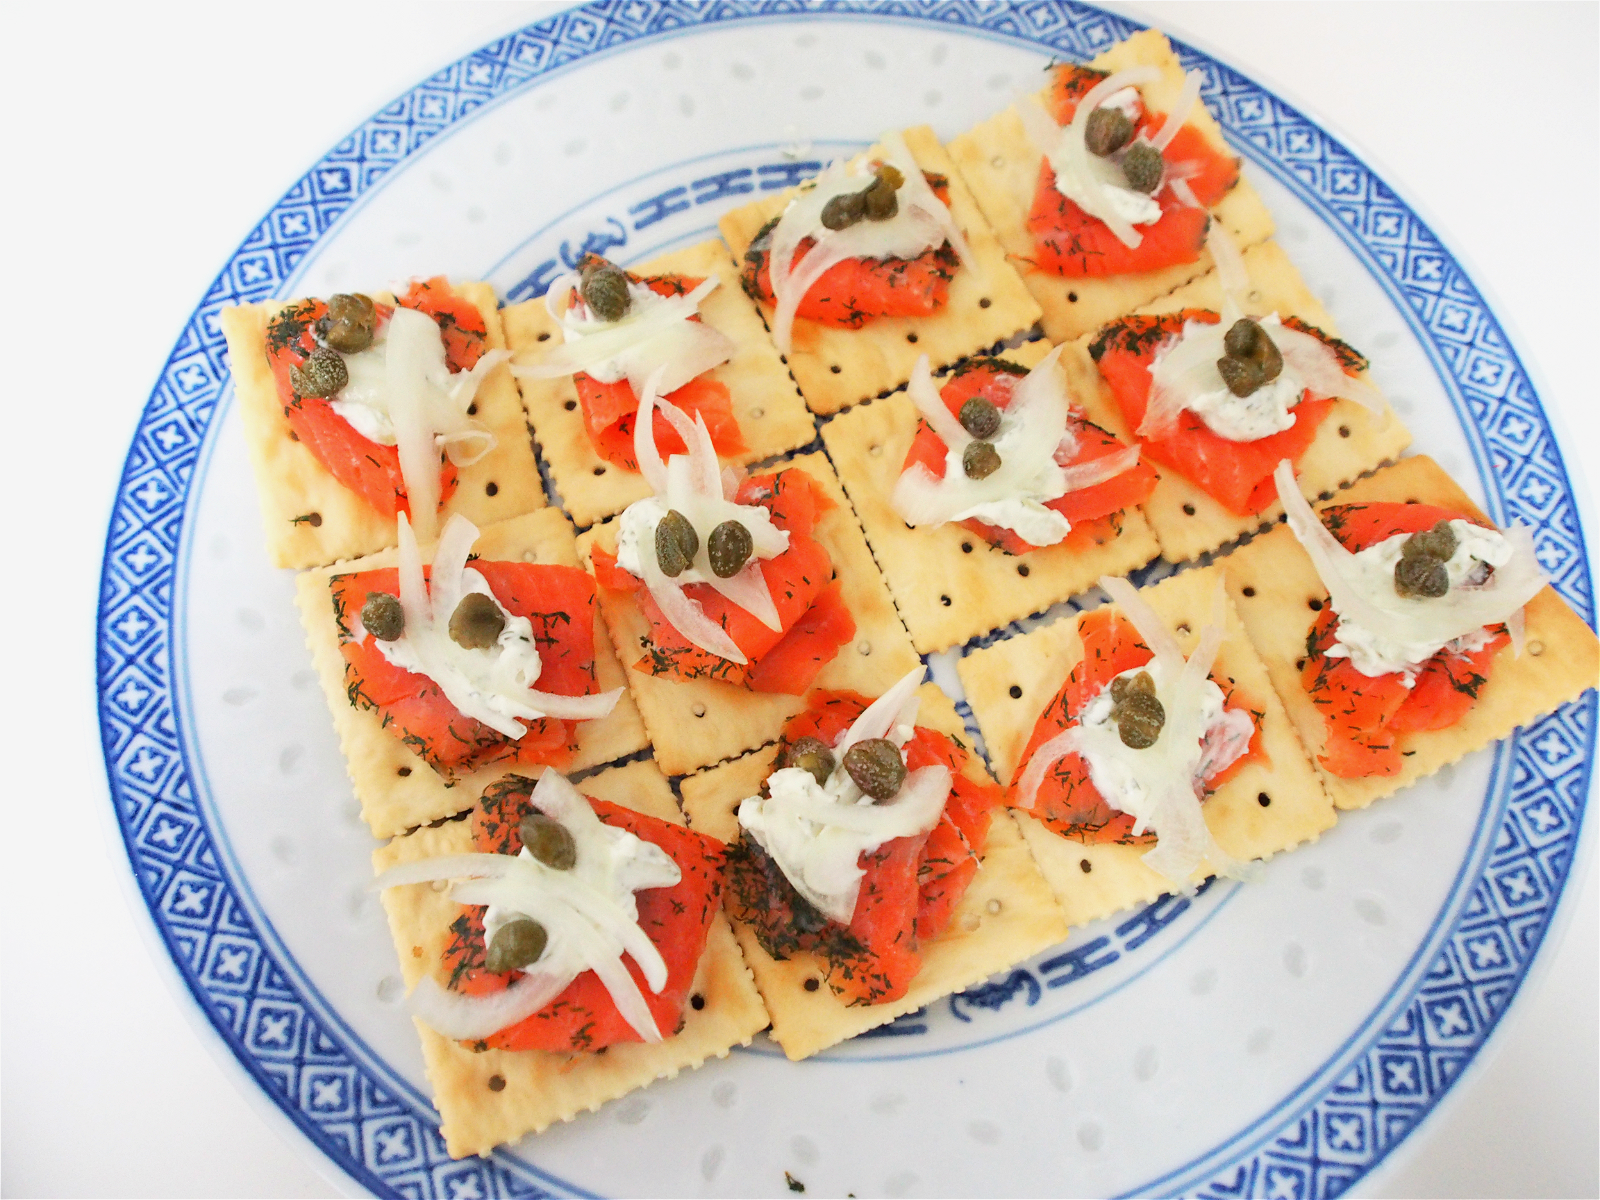 How to make canap my canap recipes imchacha travel for Canape receipes